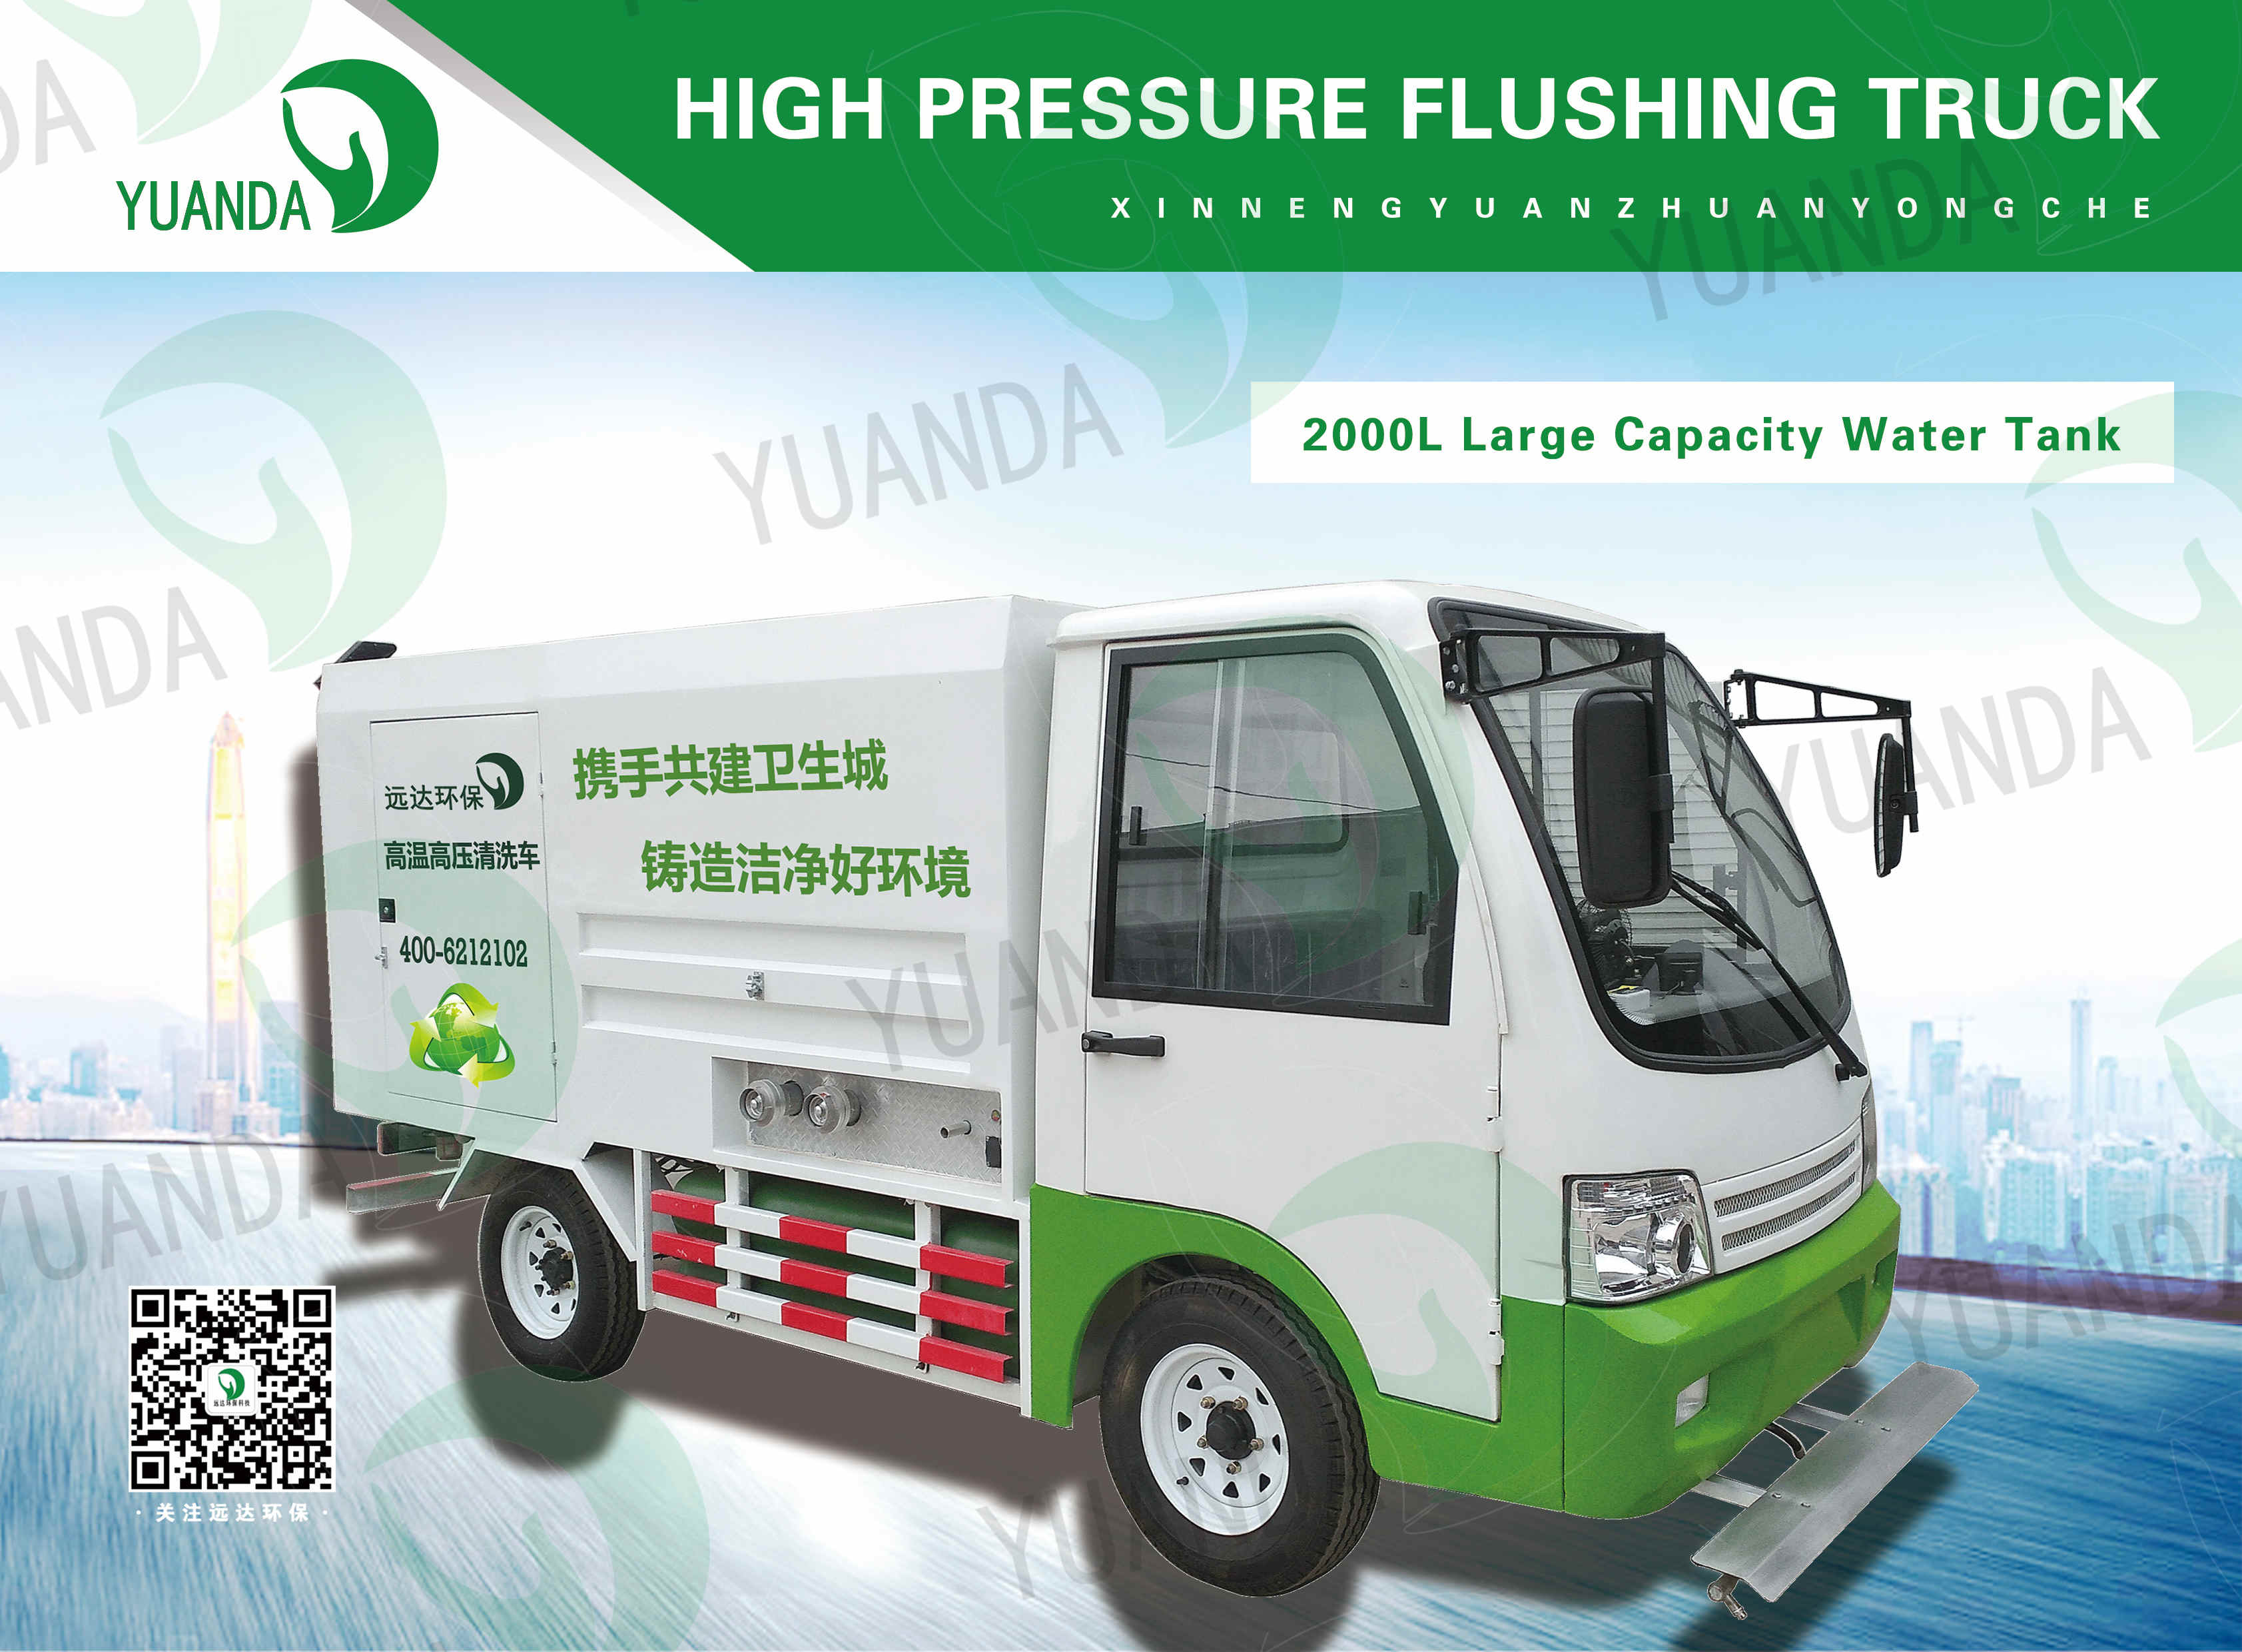 High temperature and high pressure cleaning vehicle YD4Q2000A1